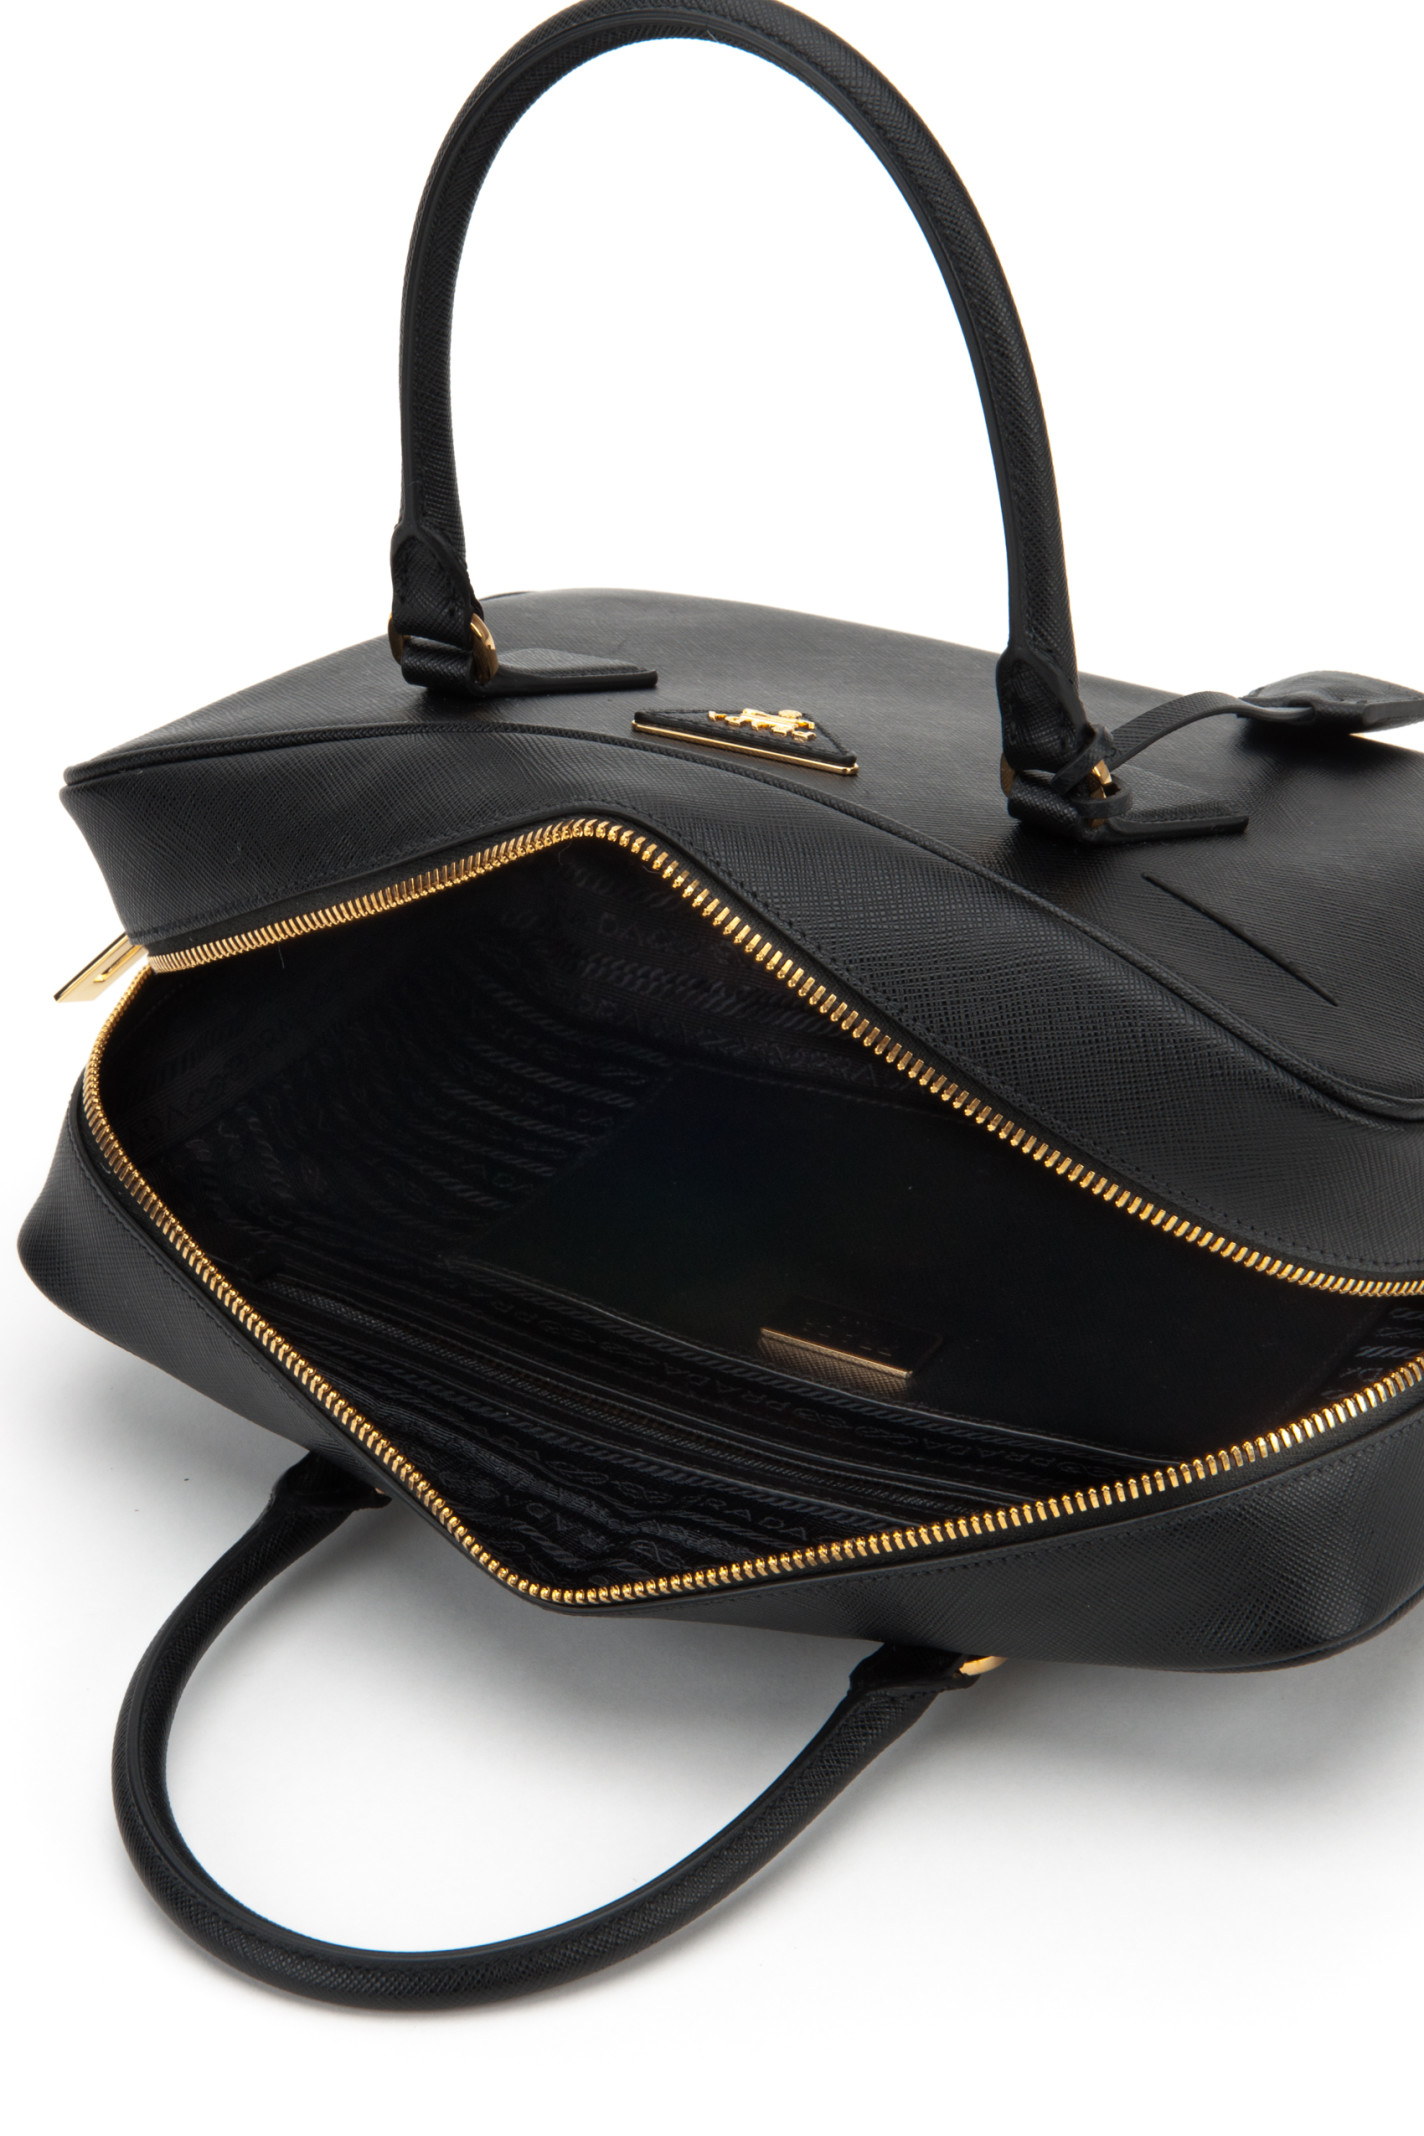 da865dbb3331 prada black bowling bag